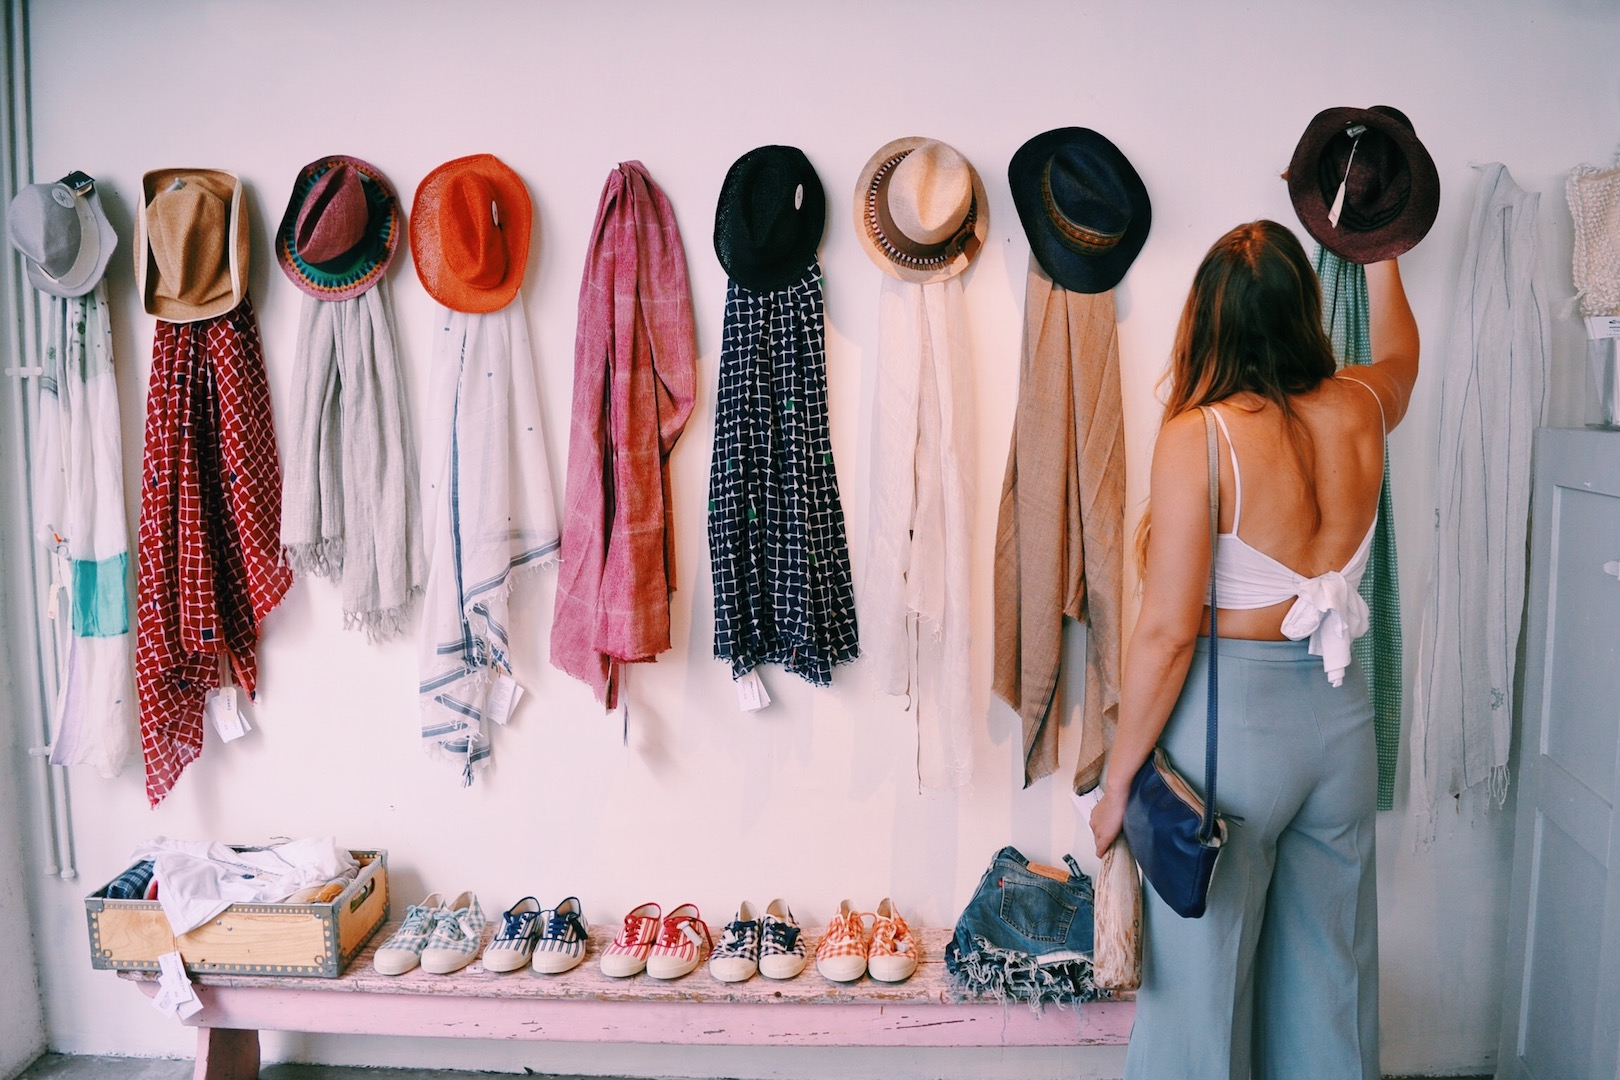 hats-and-accessories-merci-store-paris.JPG